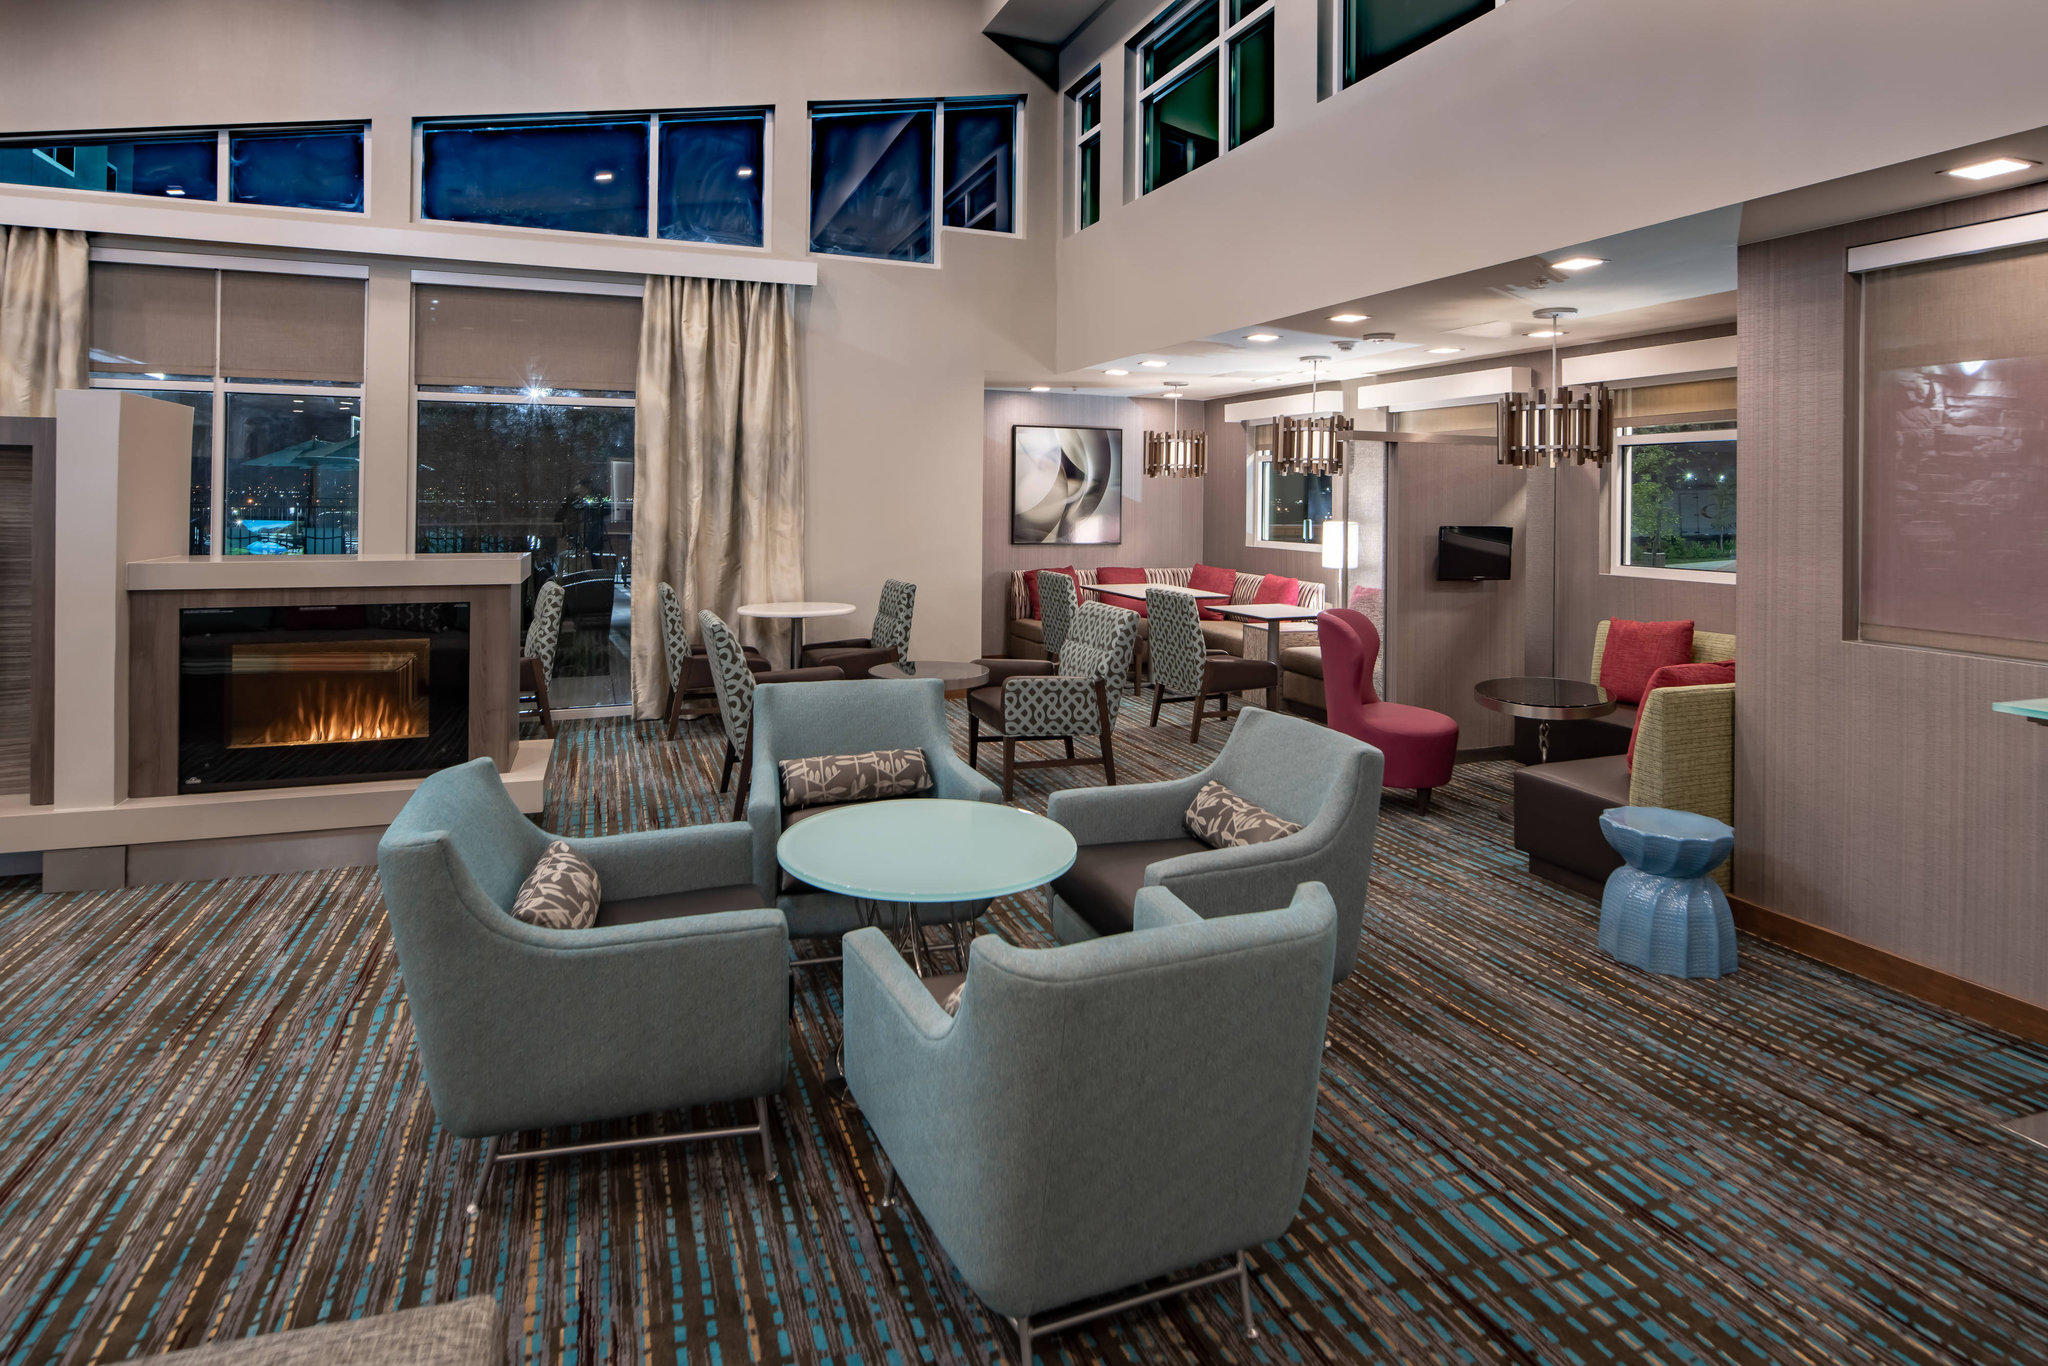 Residence Inn by Marriott Dallas at The Canyon